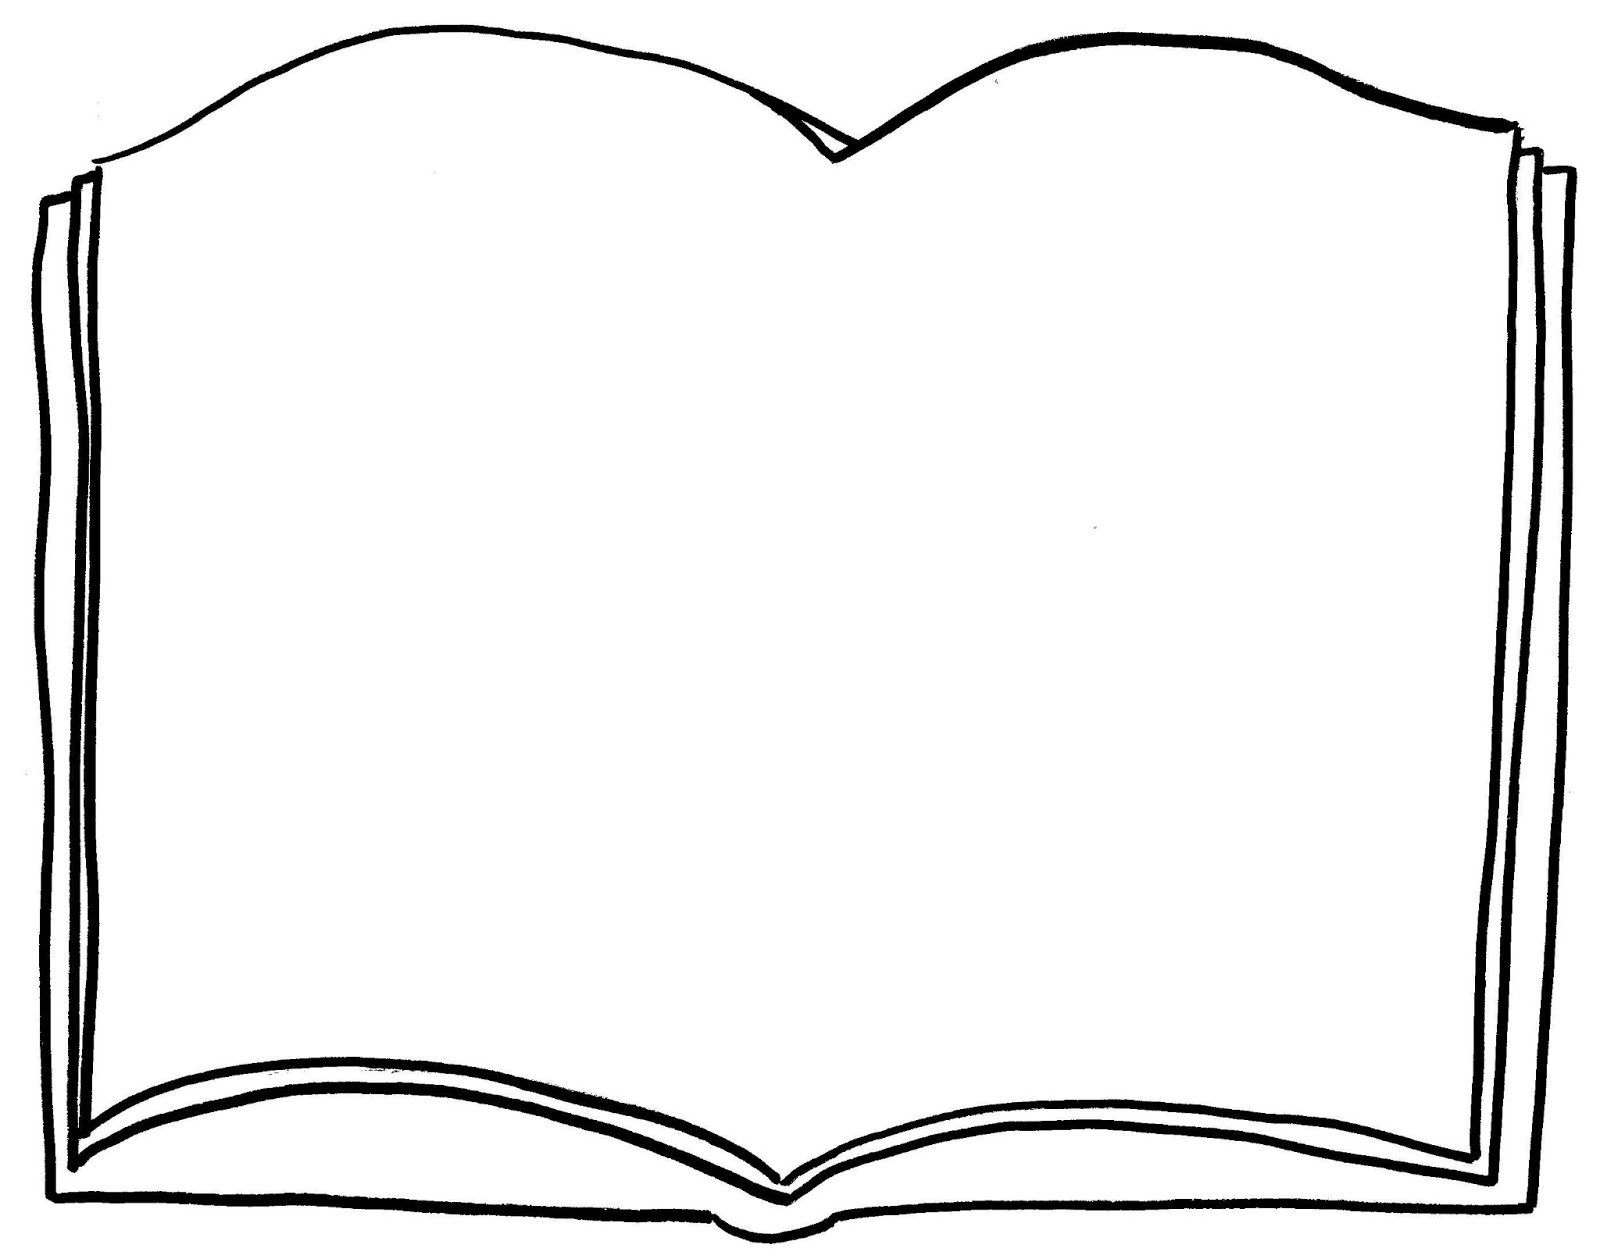 5 Images of Open Book Printable Pages